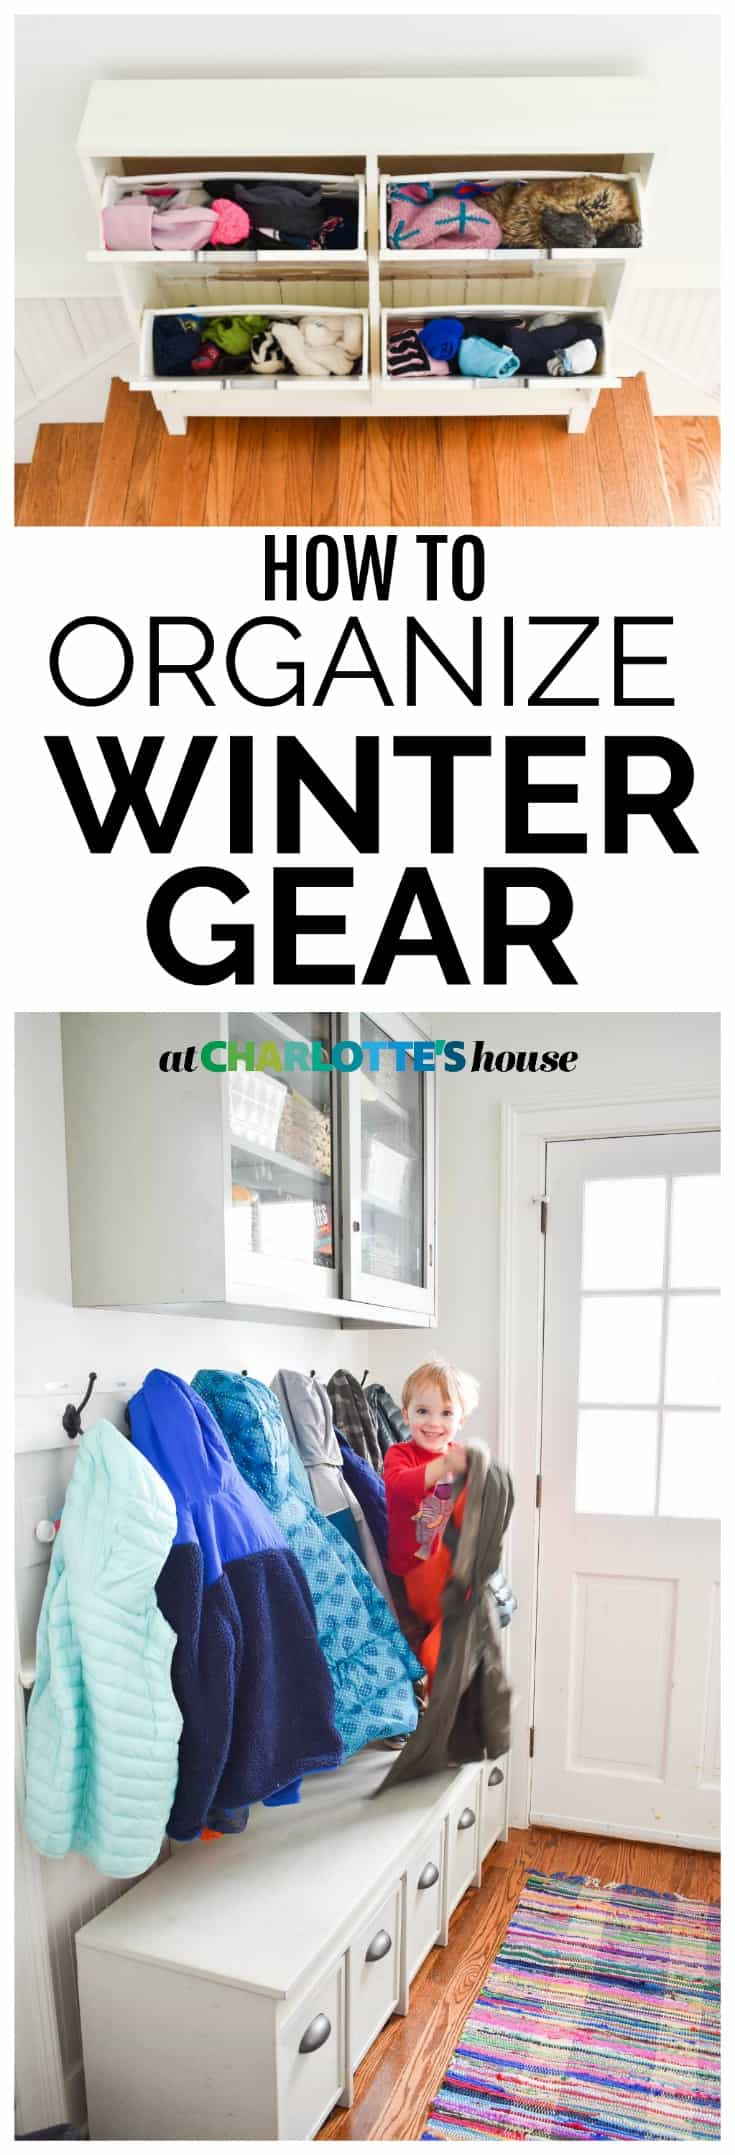 how we organize winter gear in our mudroom